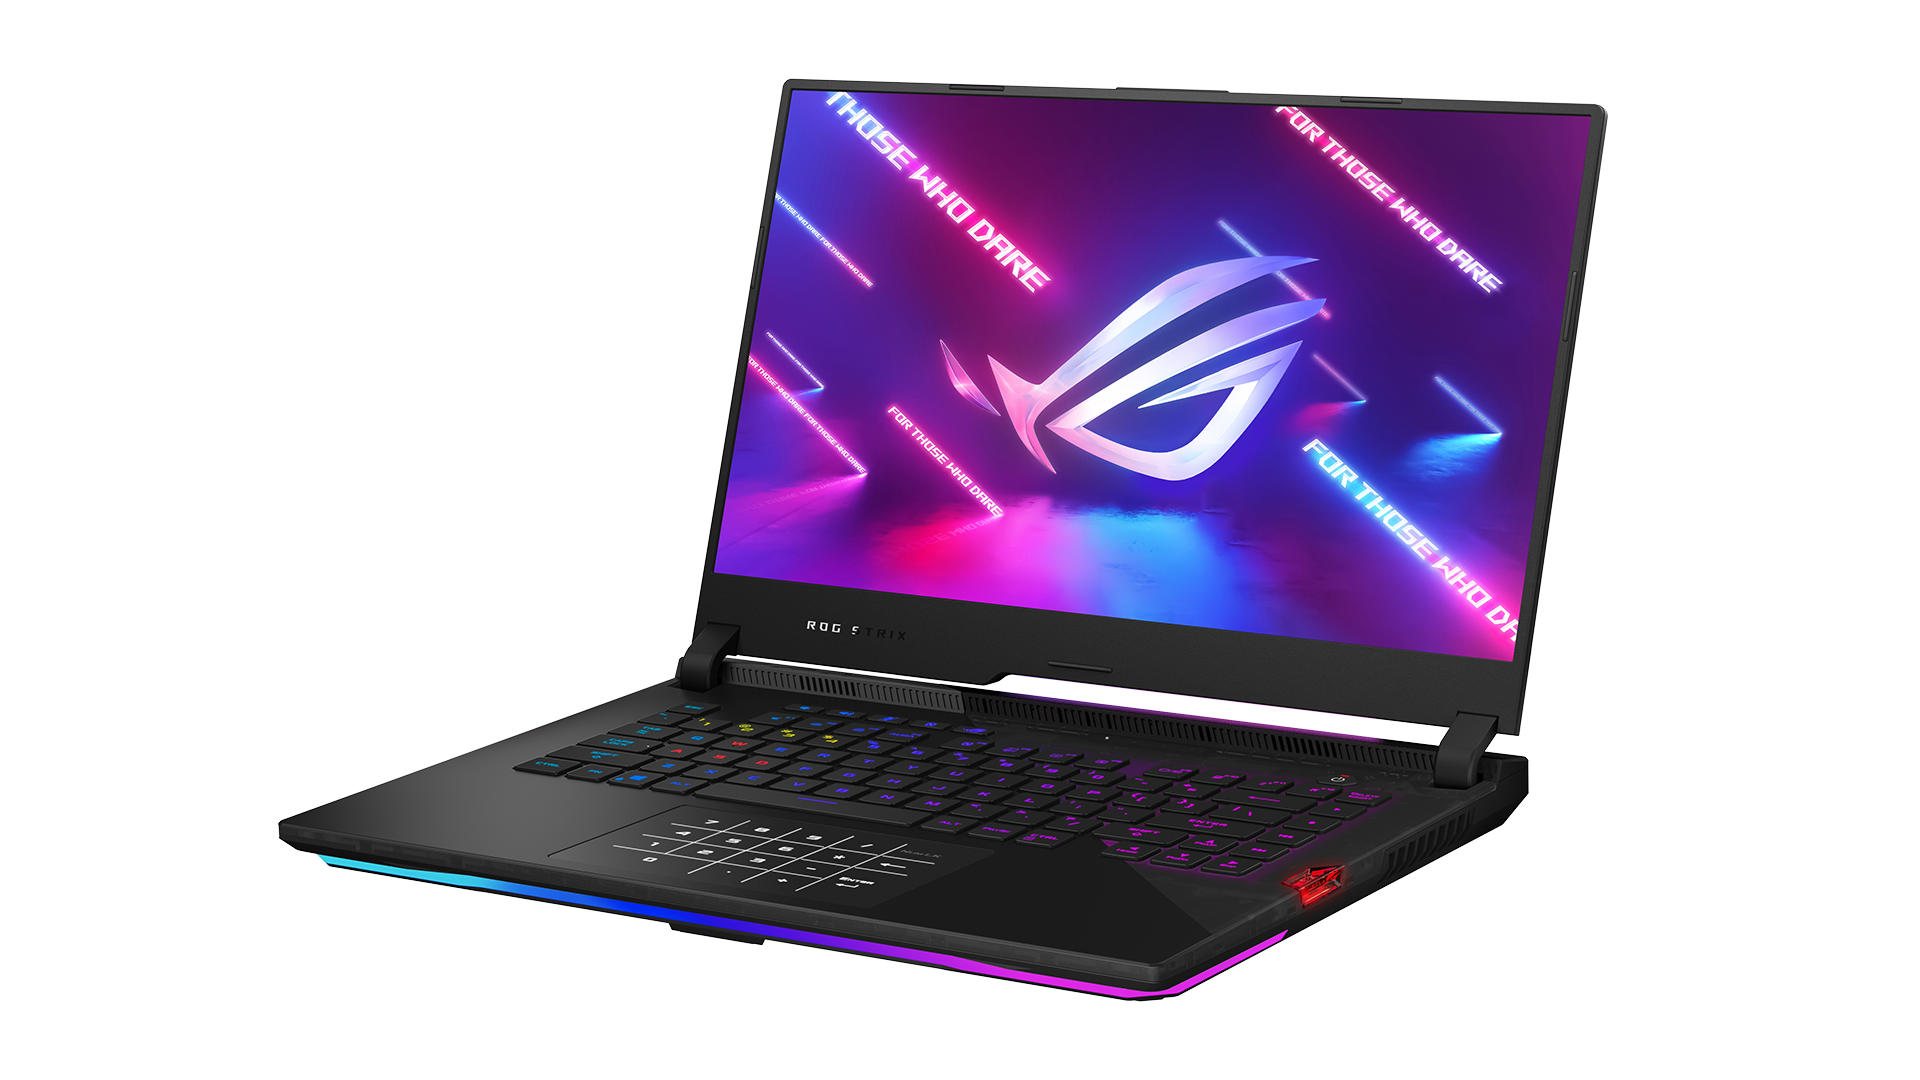 Asus launches ROG Strix series of laptops and desktop thumbnail